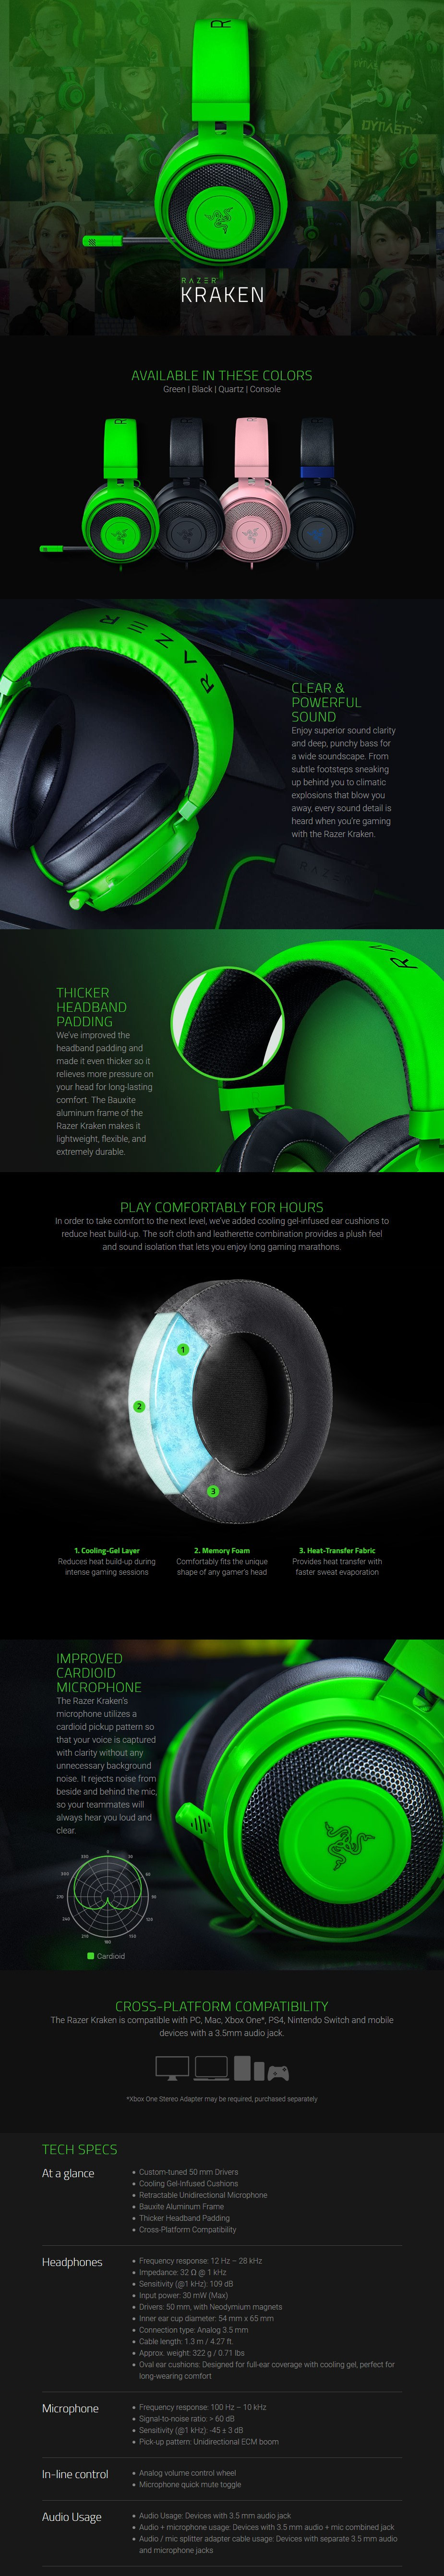 Razer Kraken Multi-platform Wired Gaming Headset - Quartz - Overview 1